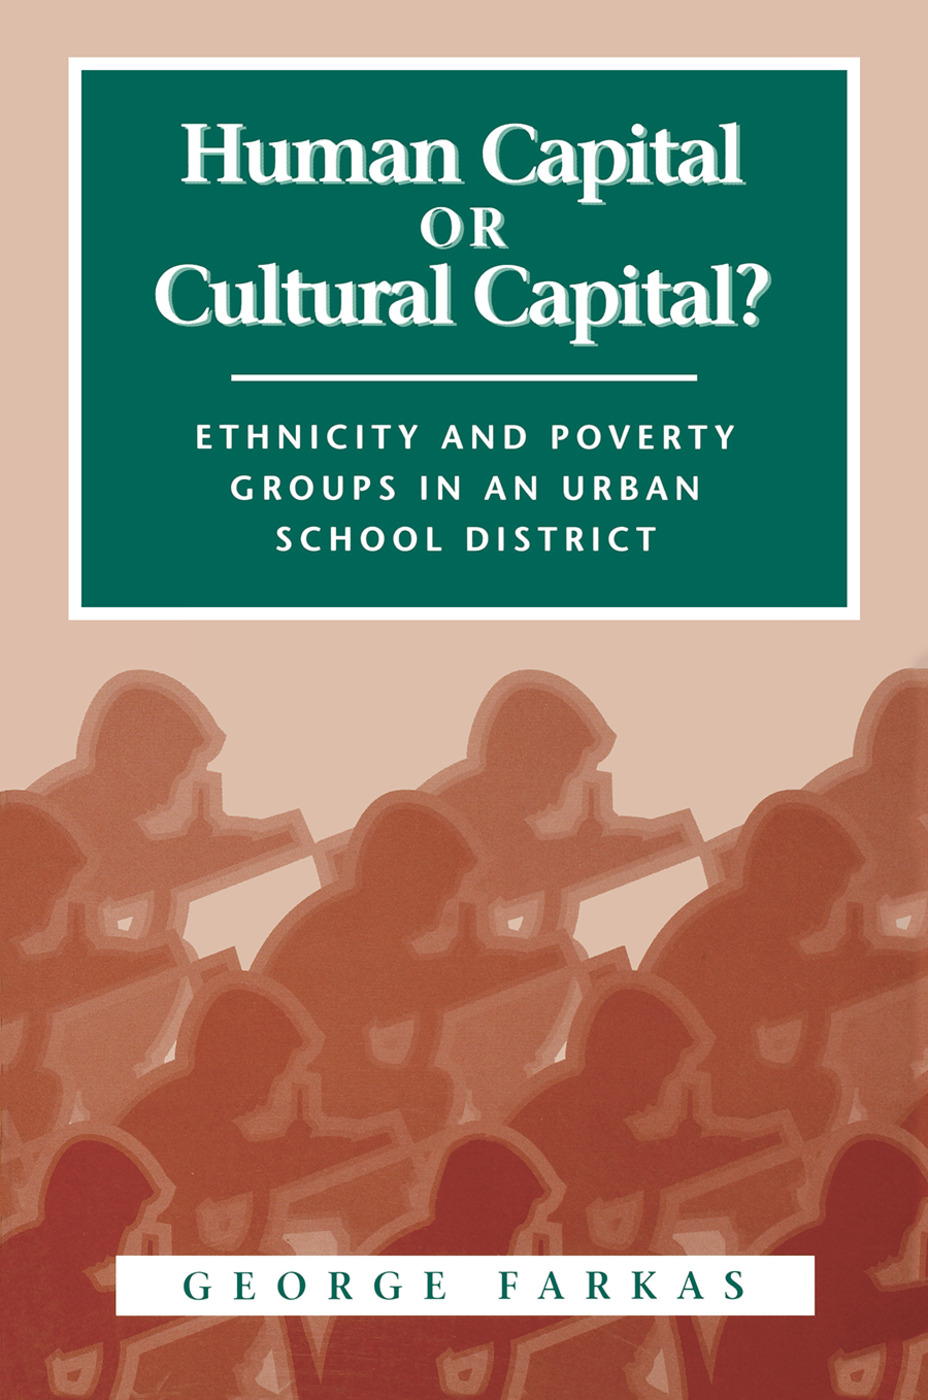 Human Capital or Cultural Capital?: Ethnicity and Poverty Groups in an Urban School District book cover